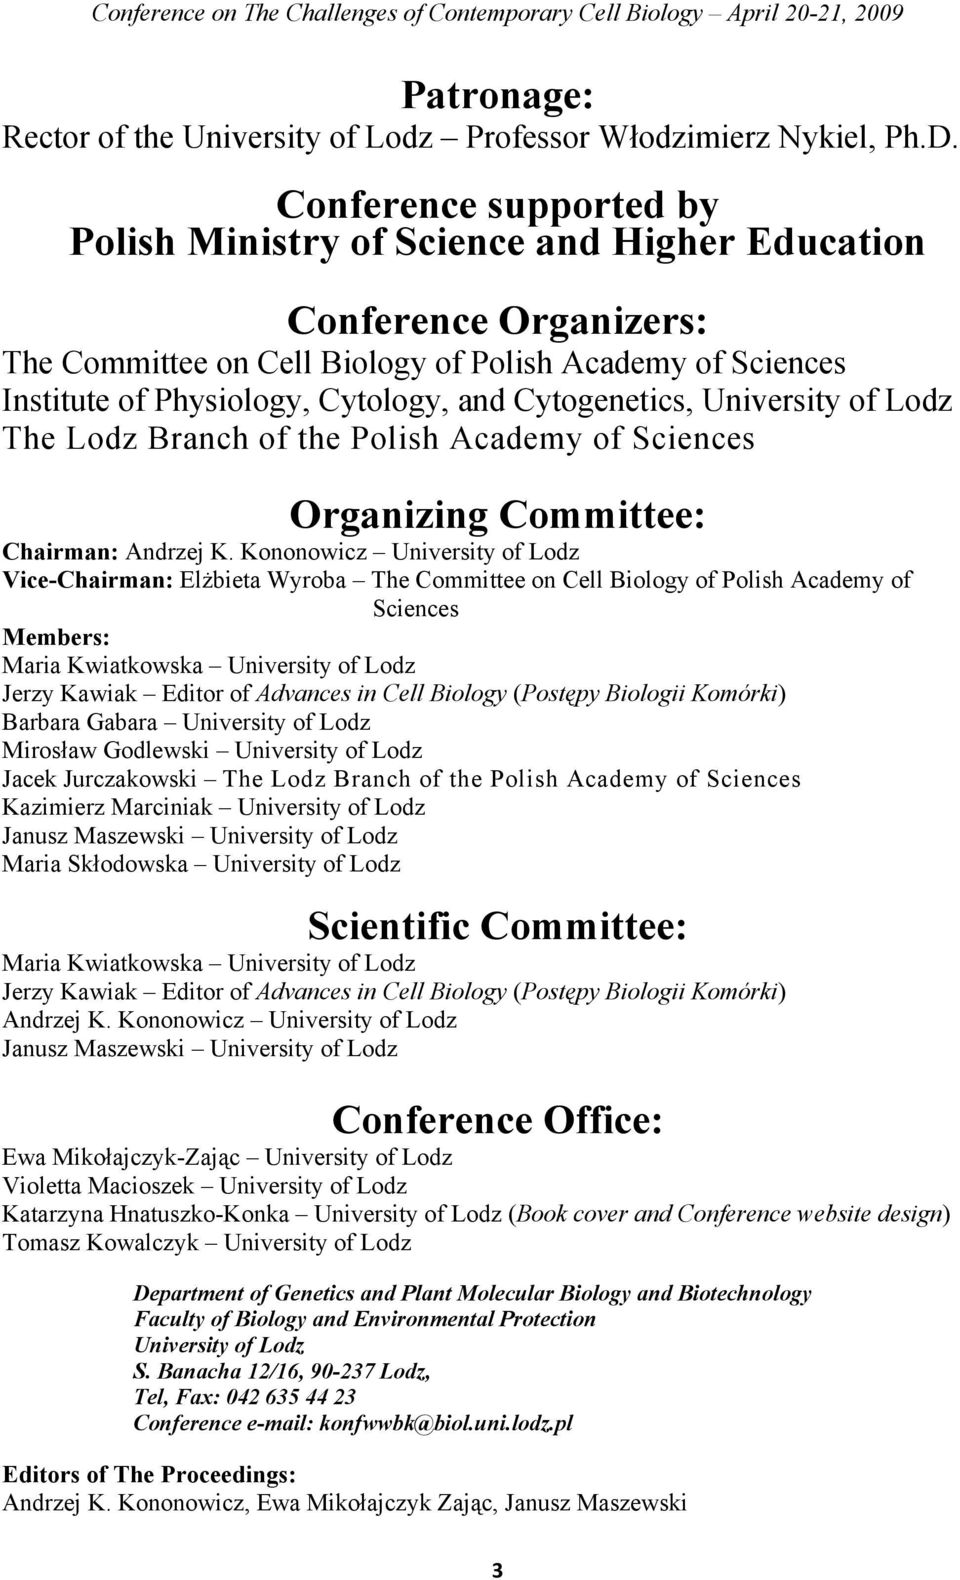 Cytogenetics, University of Lodz The Lodz Branch of the Polish Academy of Sciences Organizing Committee: Chairman: Andrzej K.